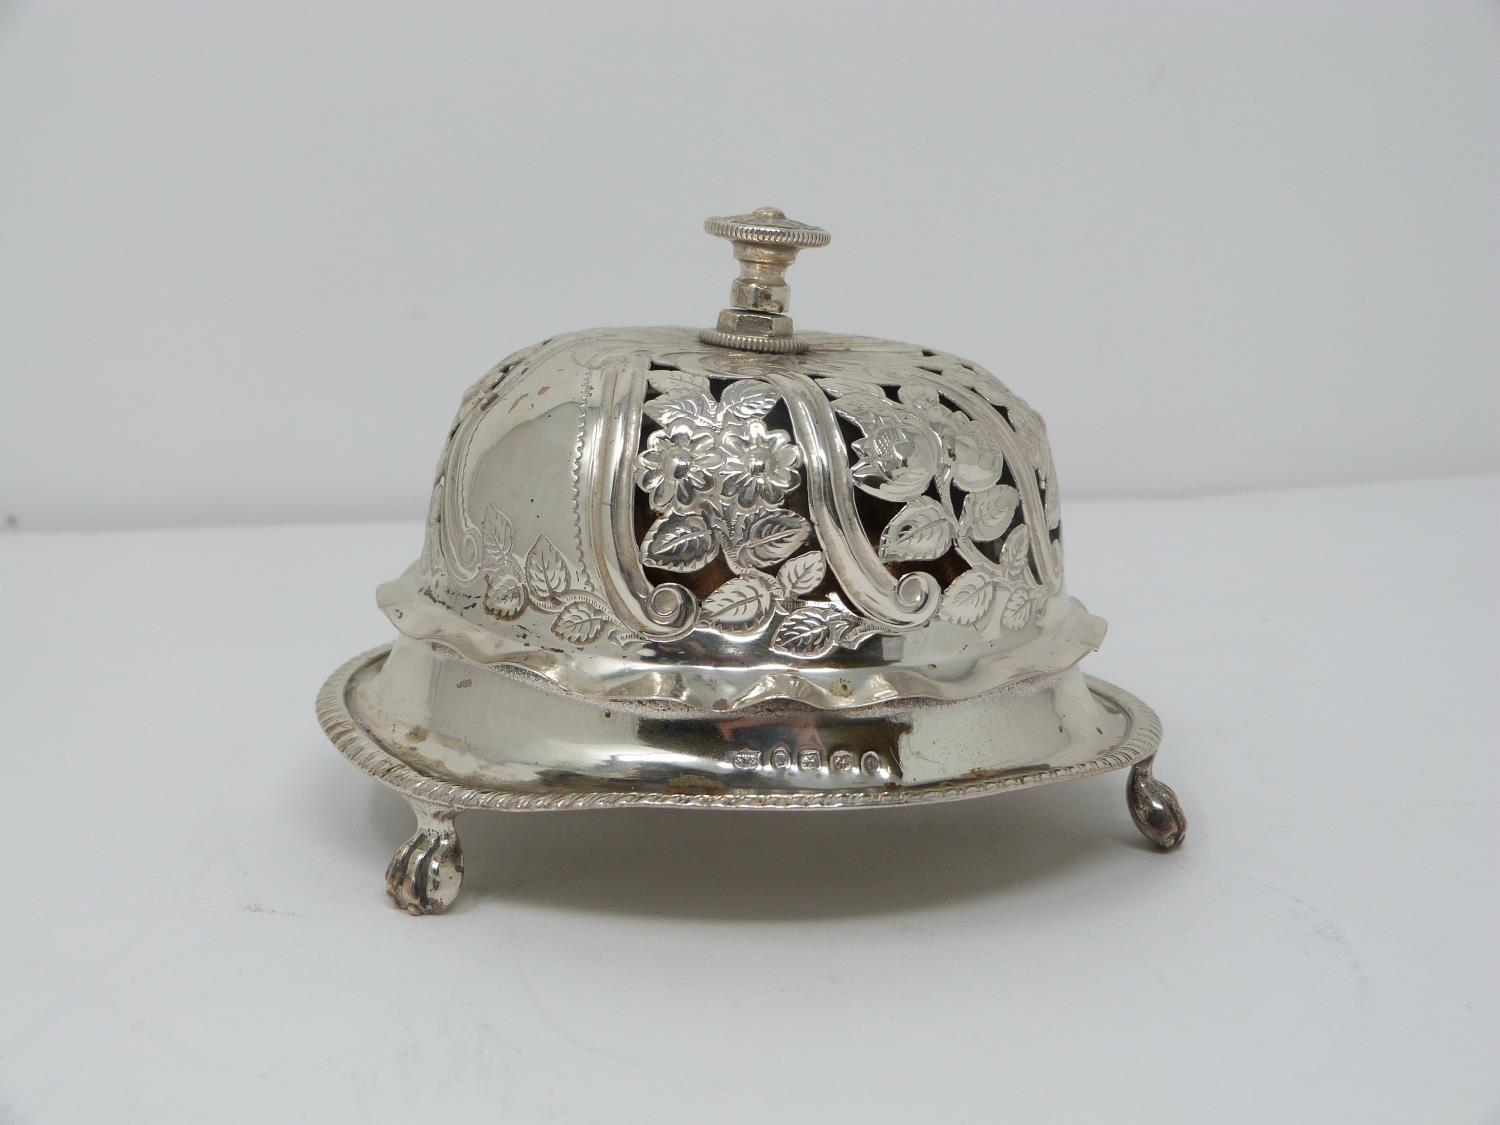 A Victorian silver pierced desk bell with stylised floral design and stylised four petal flower to